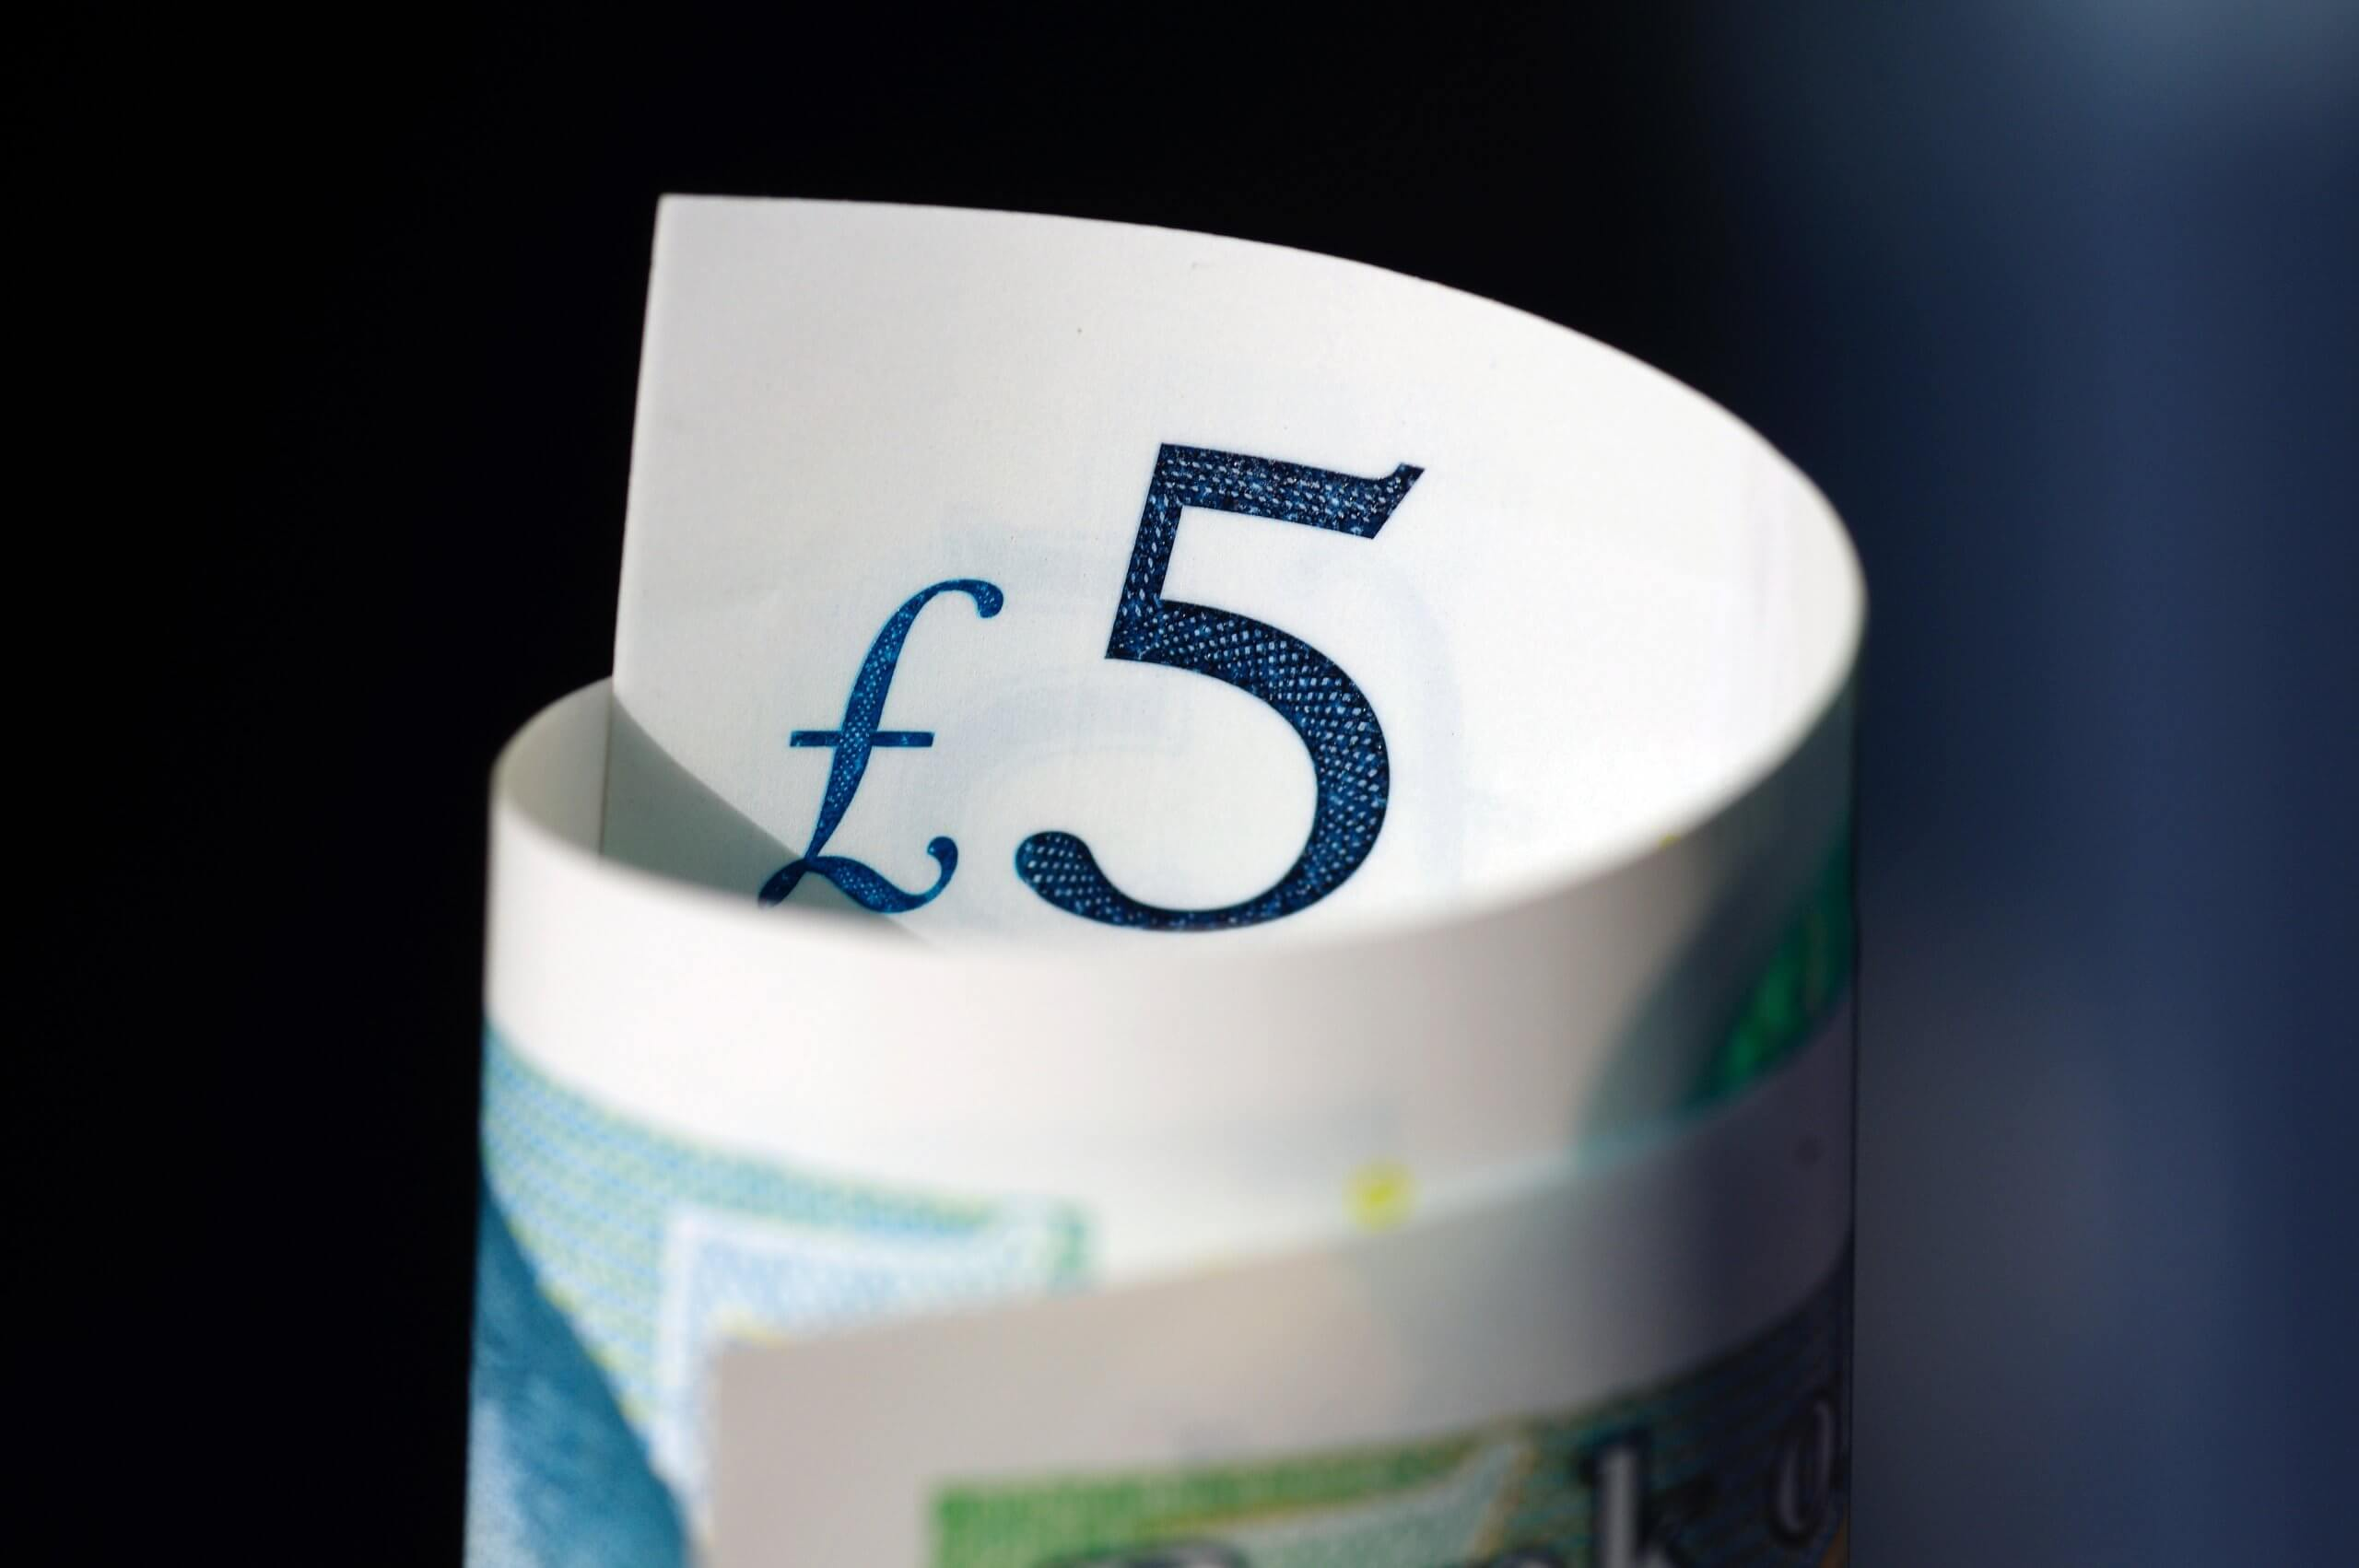 Rolled up five pound note